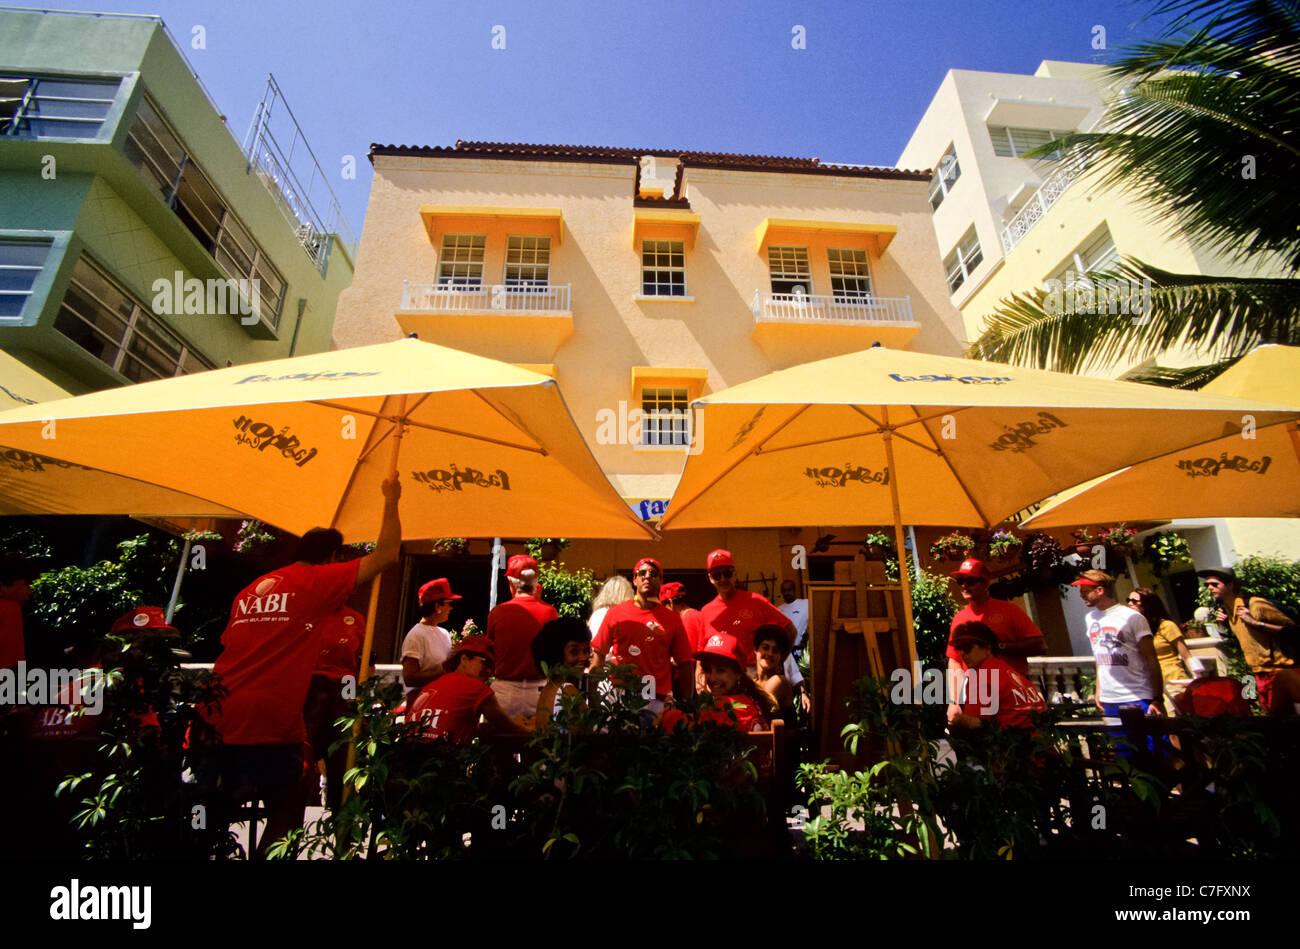 Group of people under umbrellas on Miami beach road or Ocean Boulevard in Florida, USA - Stock Image